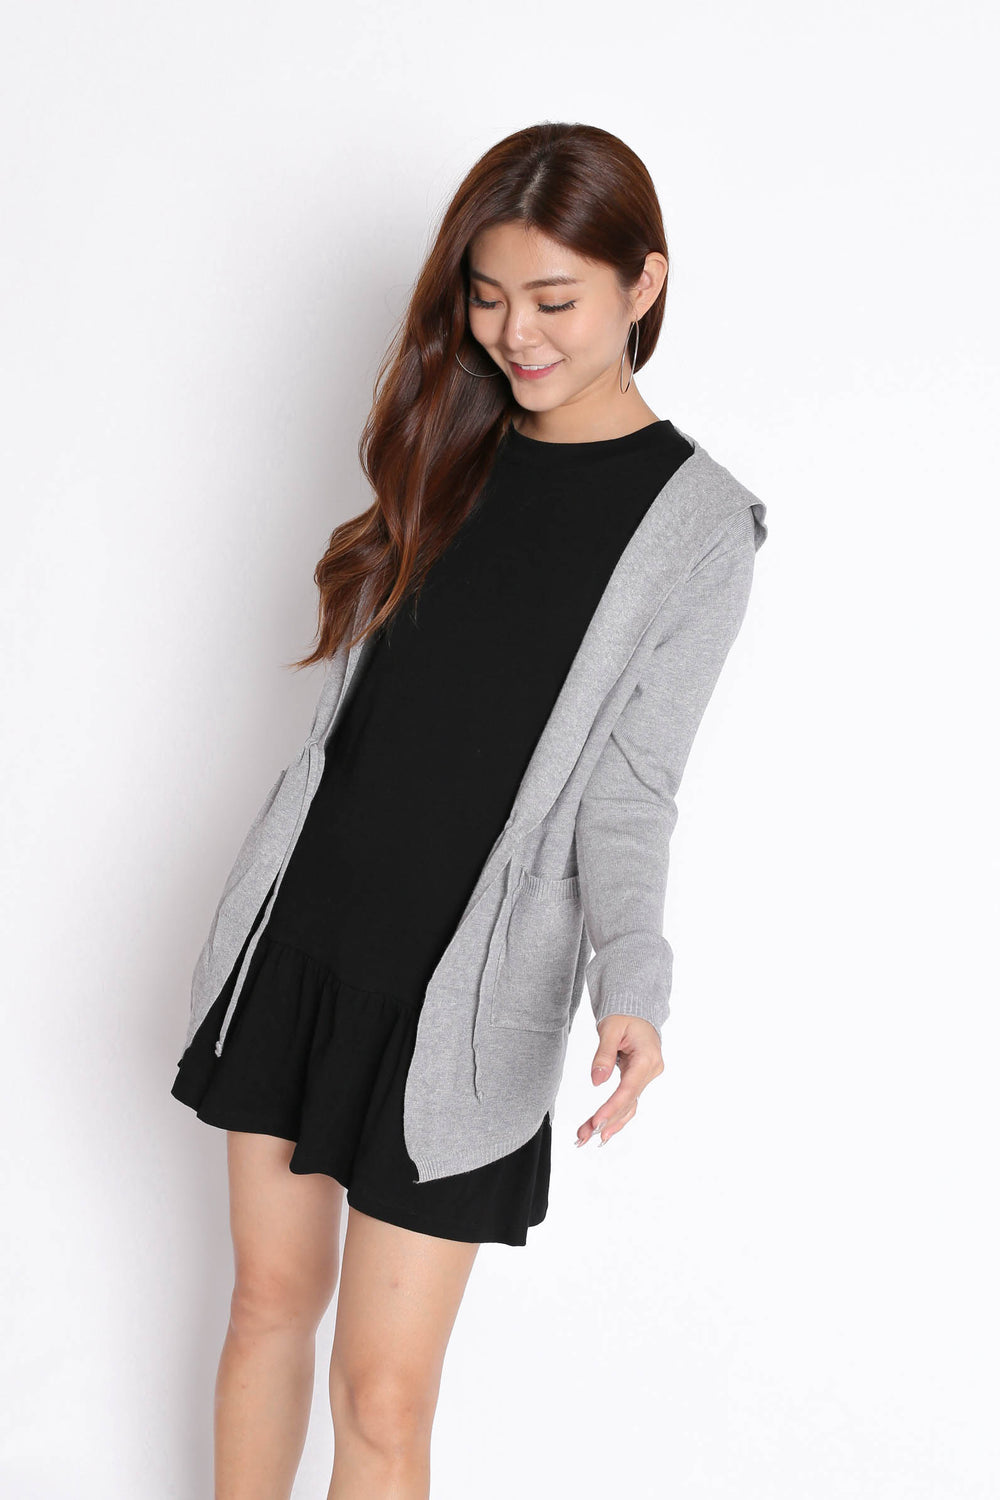 BRAE SOFT KNIT CARDIGAN IN LIGHT GREY